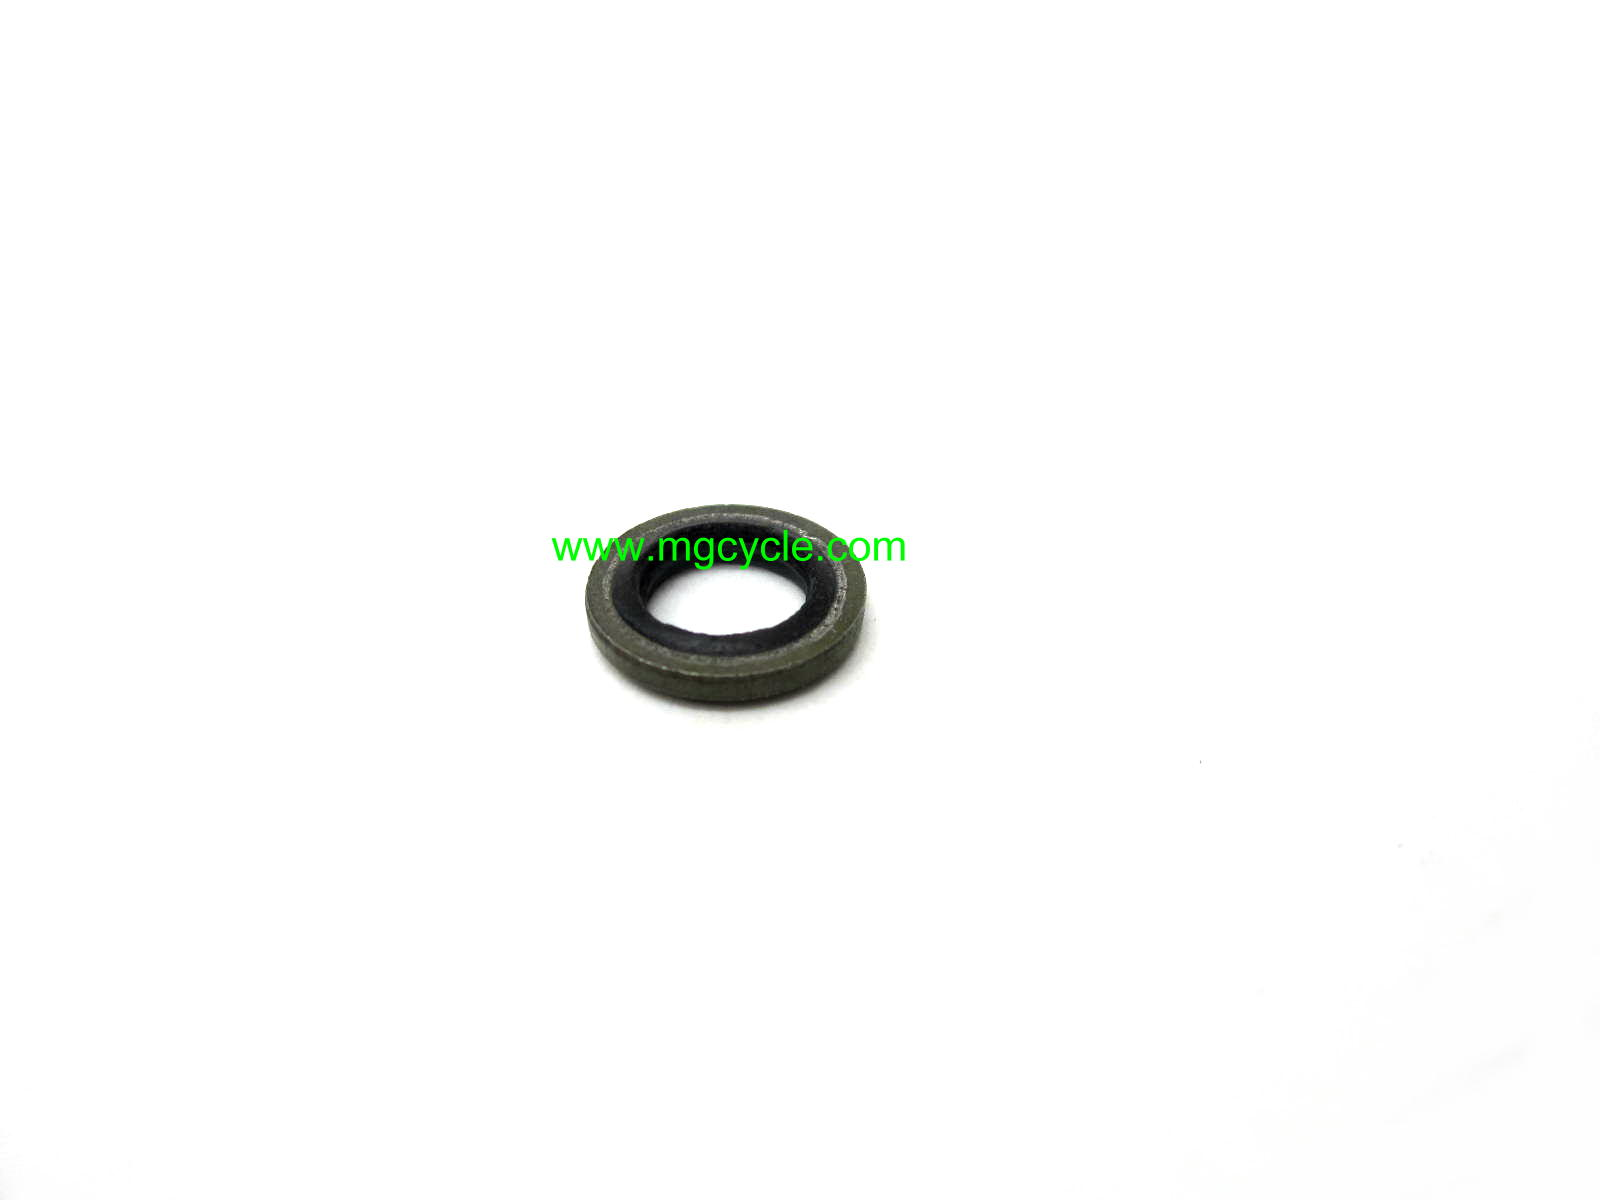 8mm seal washer with rubber center sub for GU12154200